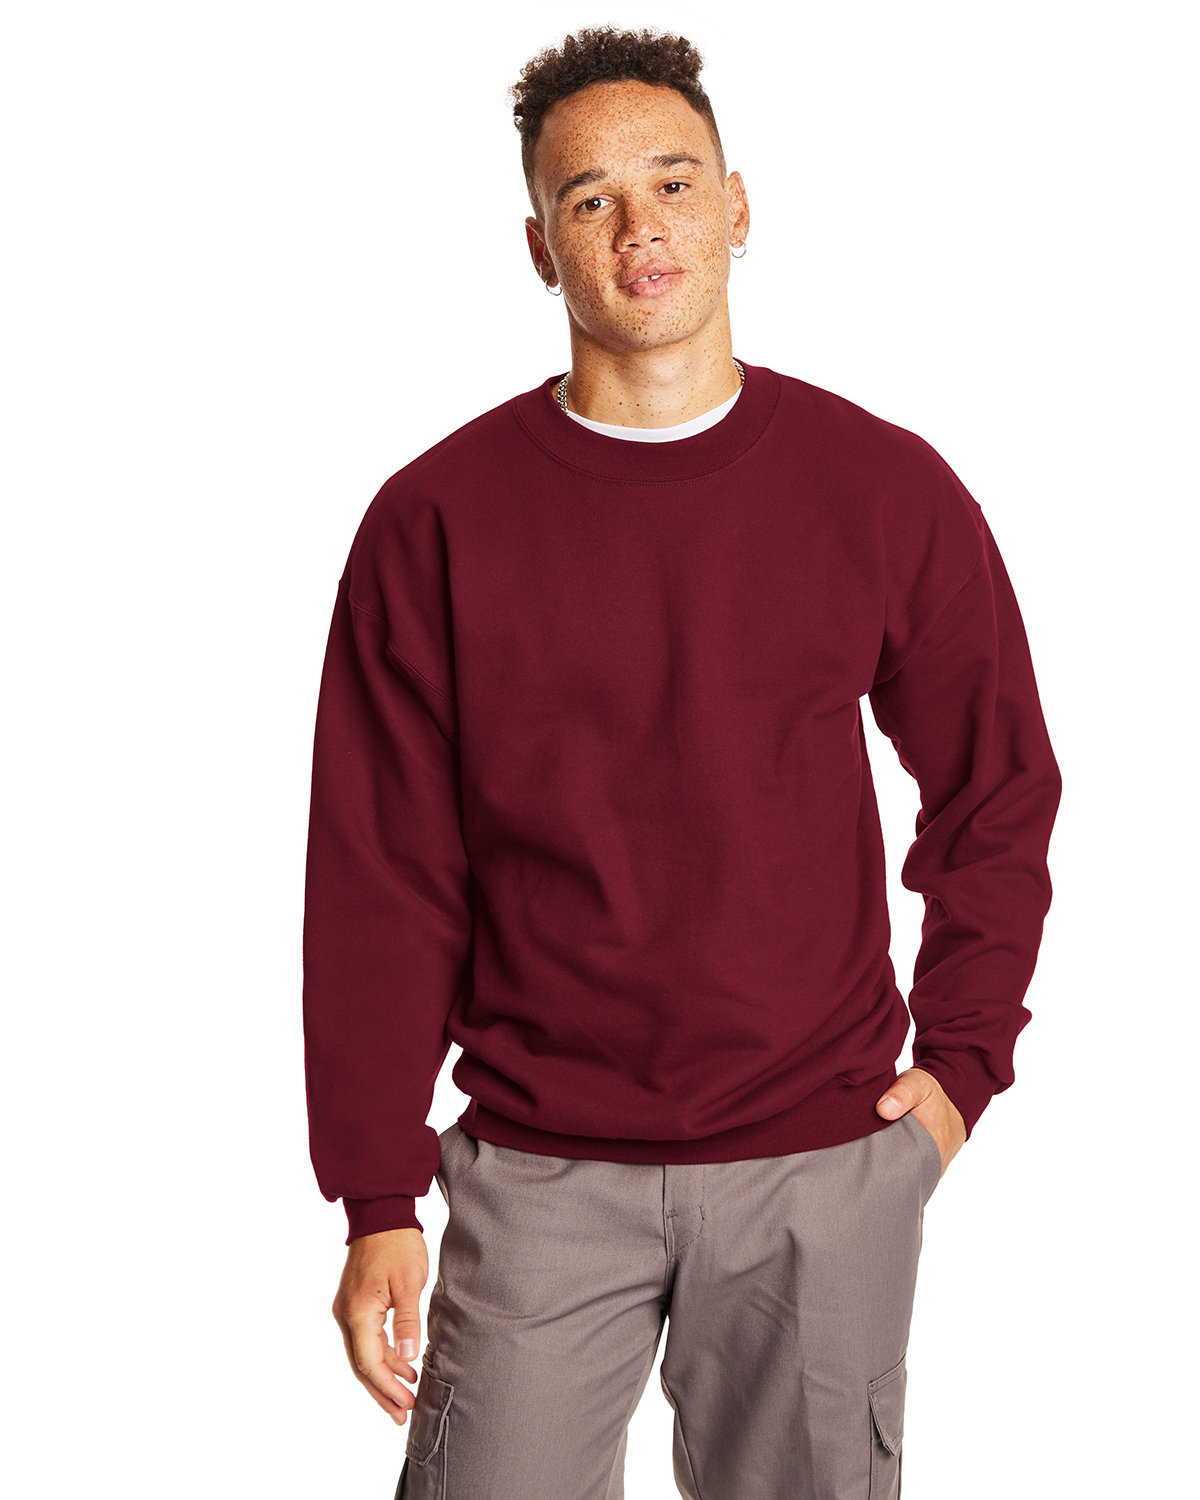 Hanes Adult Ultimate Cotton® 90/10 Fleece Crew MAROON